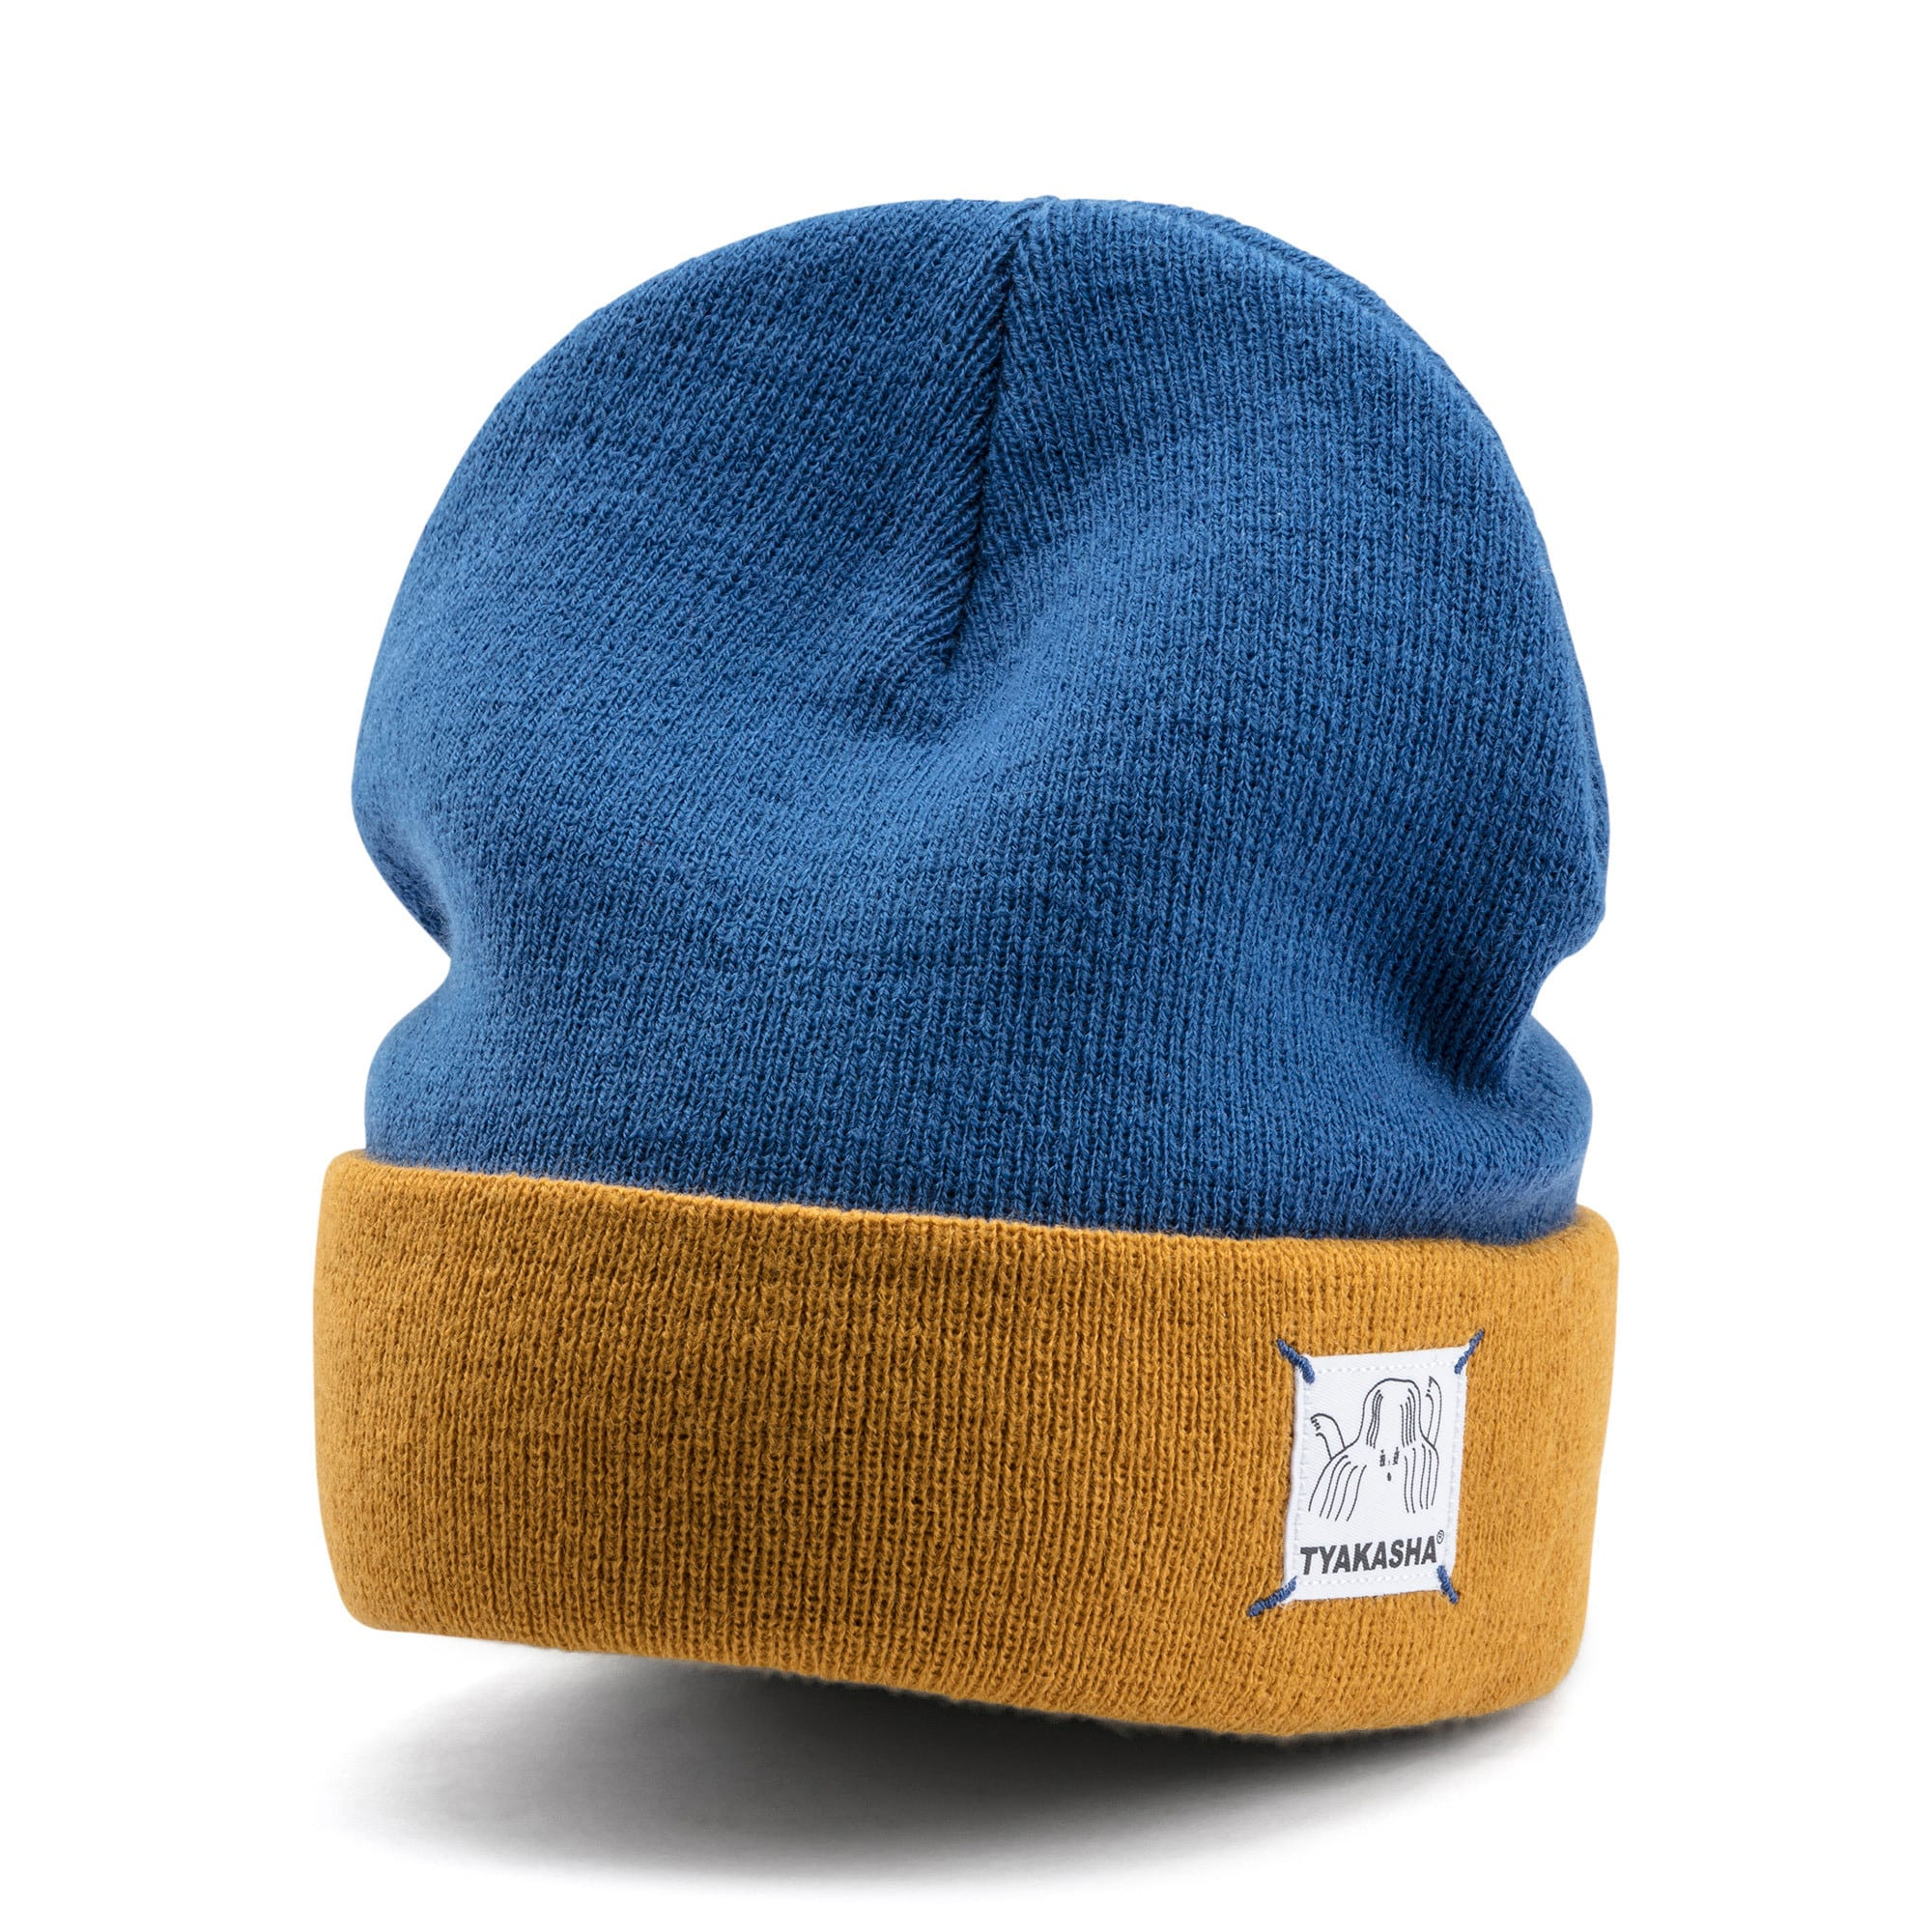 Thumbnail 1 of PUMA x TYAKASHA Beanie, Galaxy Blue-Buckthorn Brown, medium